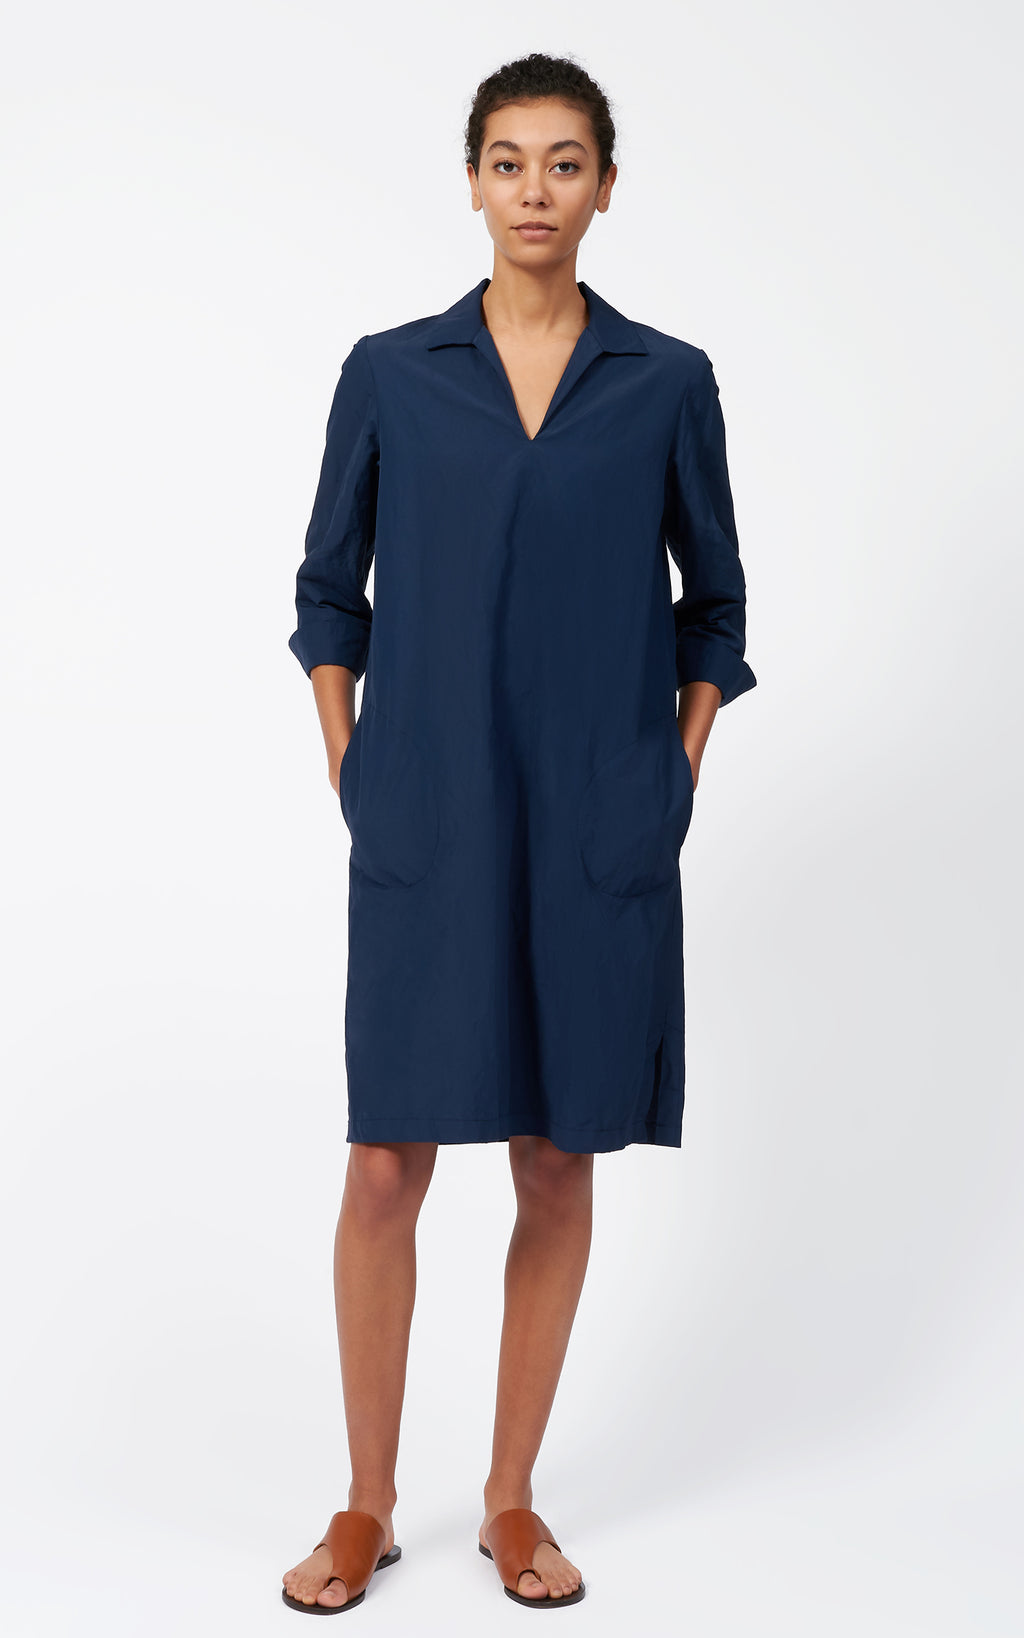 COLLARED V-NECK DRESS - NAVY